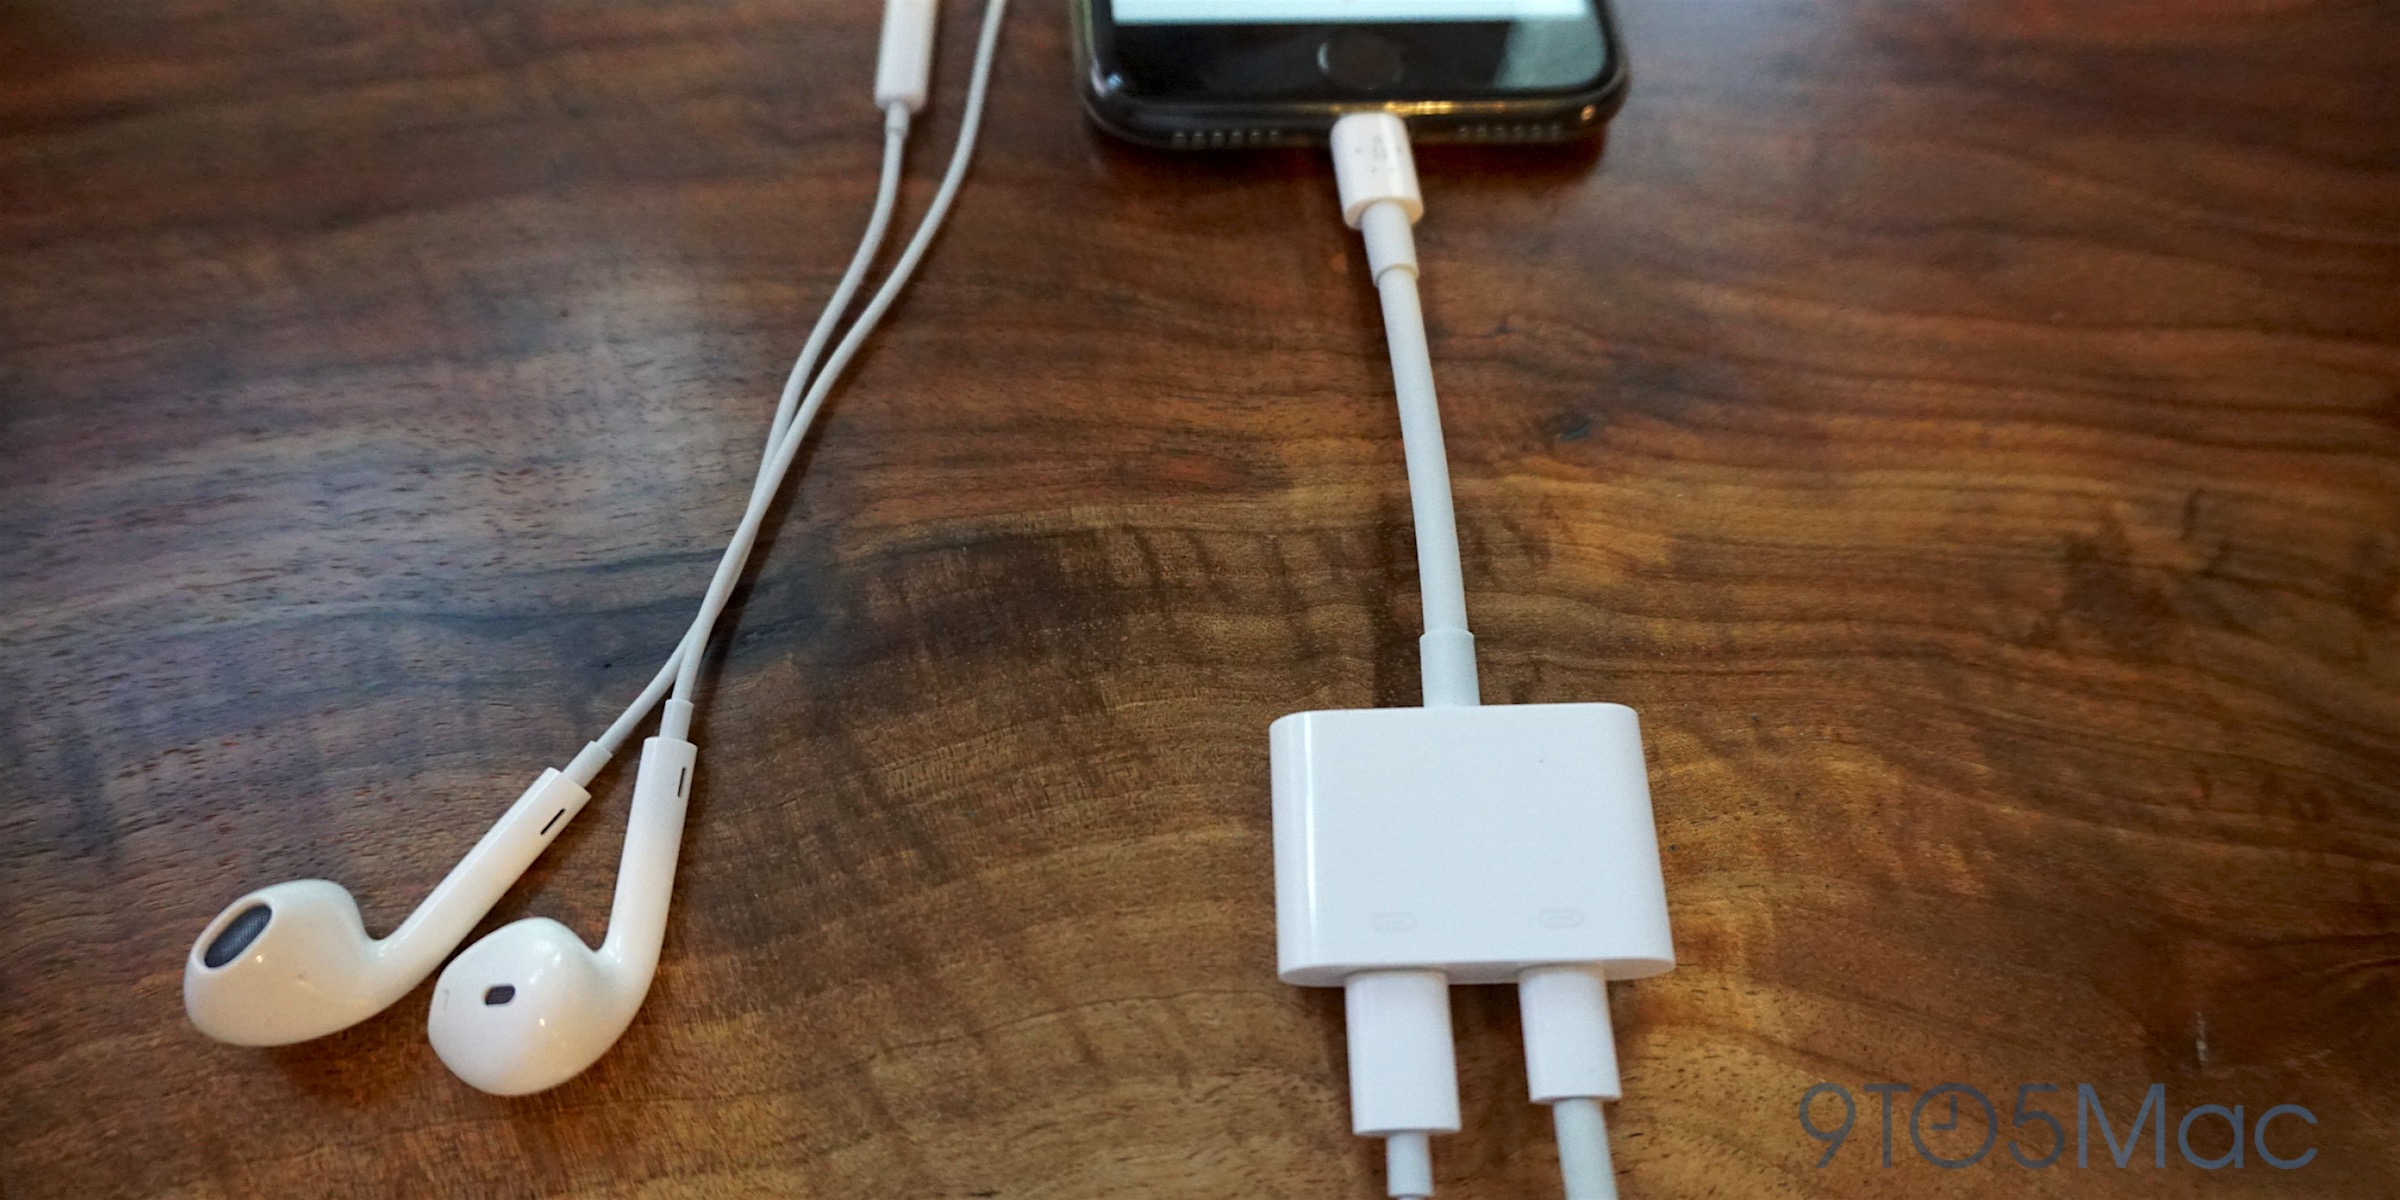 how to change charging port on iphone 5